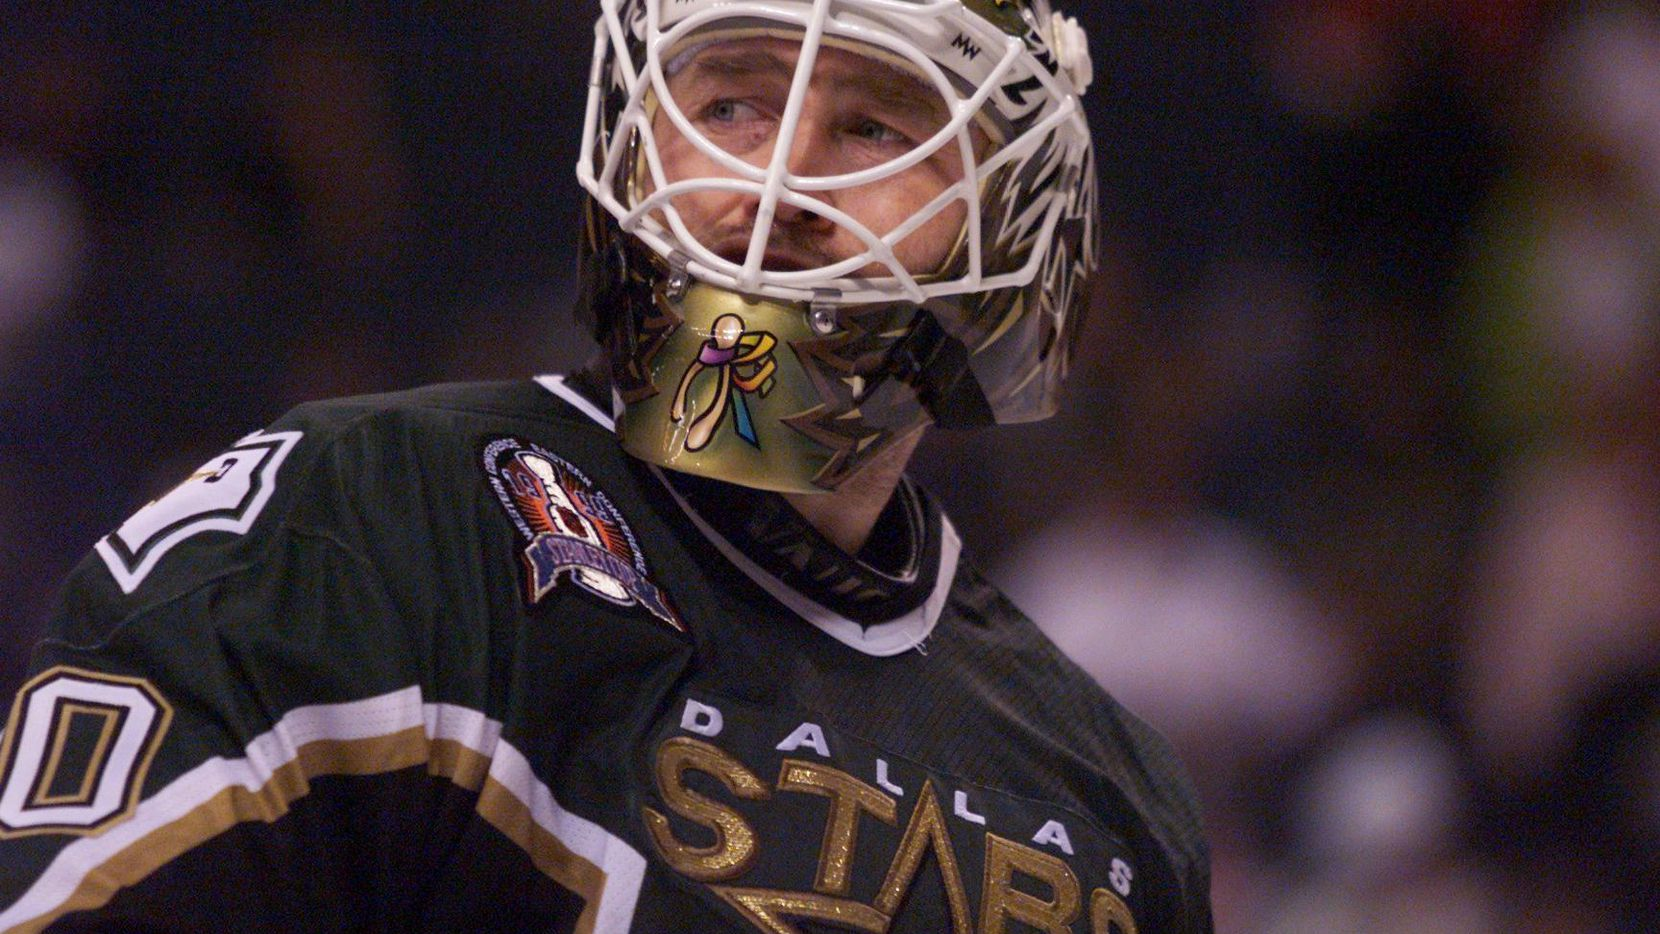 The Stars' Ed Belfour is seen during the second period of Game 6 of the 1999 Stanley Cup Finals at Marine Midland Arena in Buffalo.